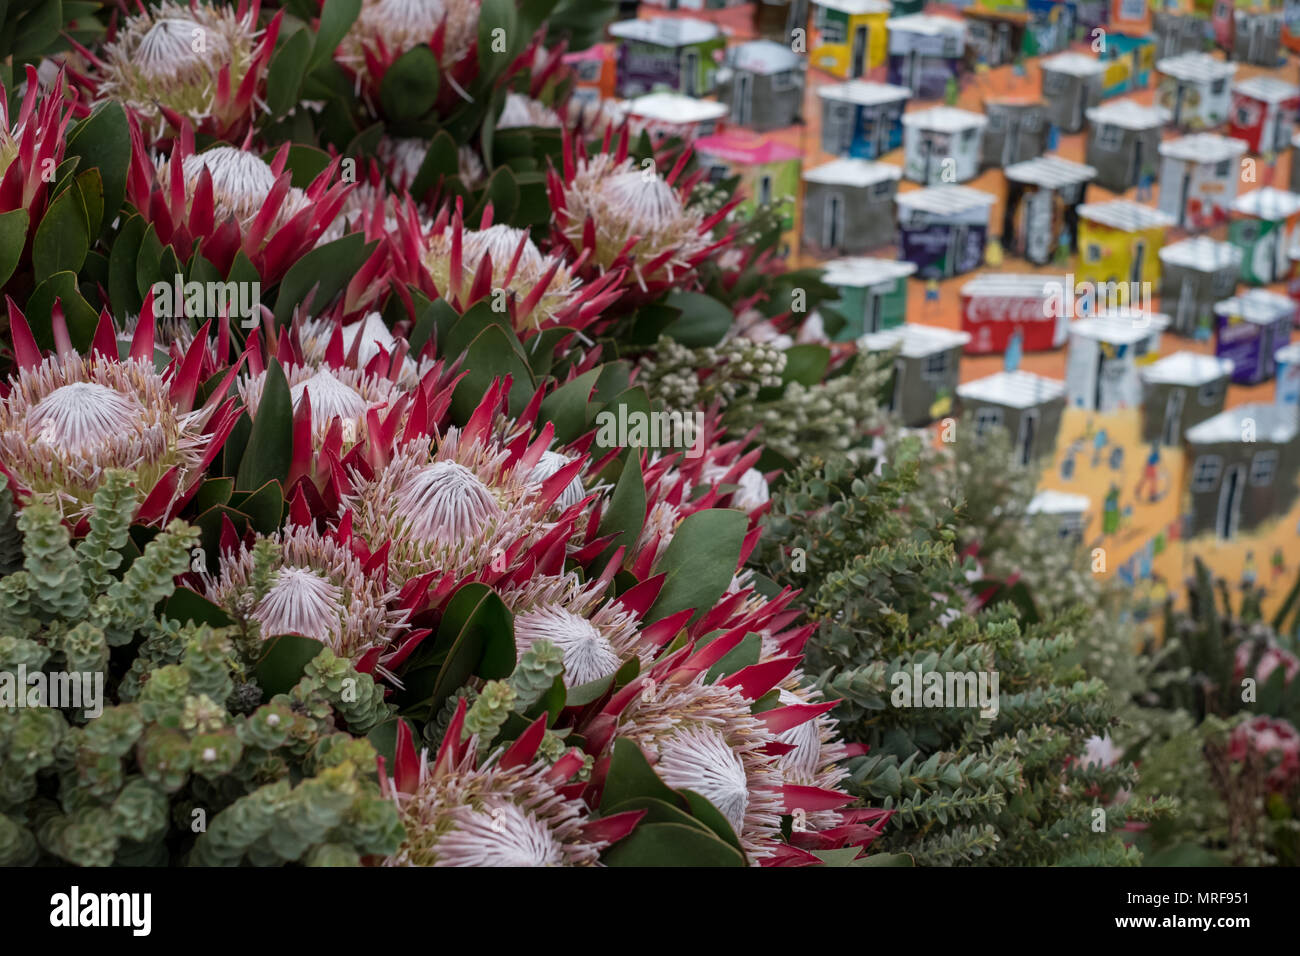 London UK, May 2018. Pink / red protea flowers, seen at a display at the Chelsea Flower Show, put on by the Royal Horticultural Society. - Stock Image